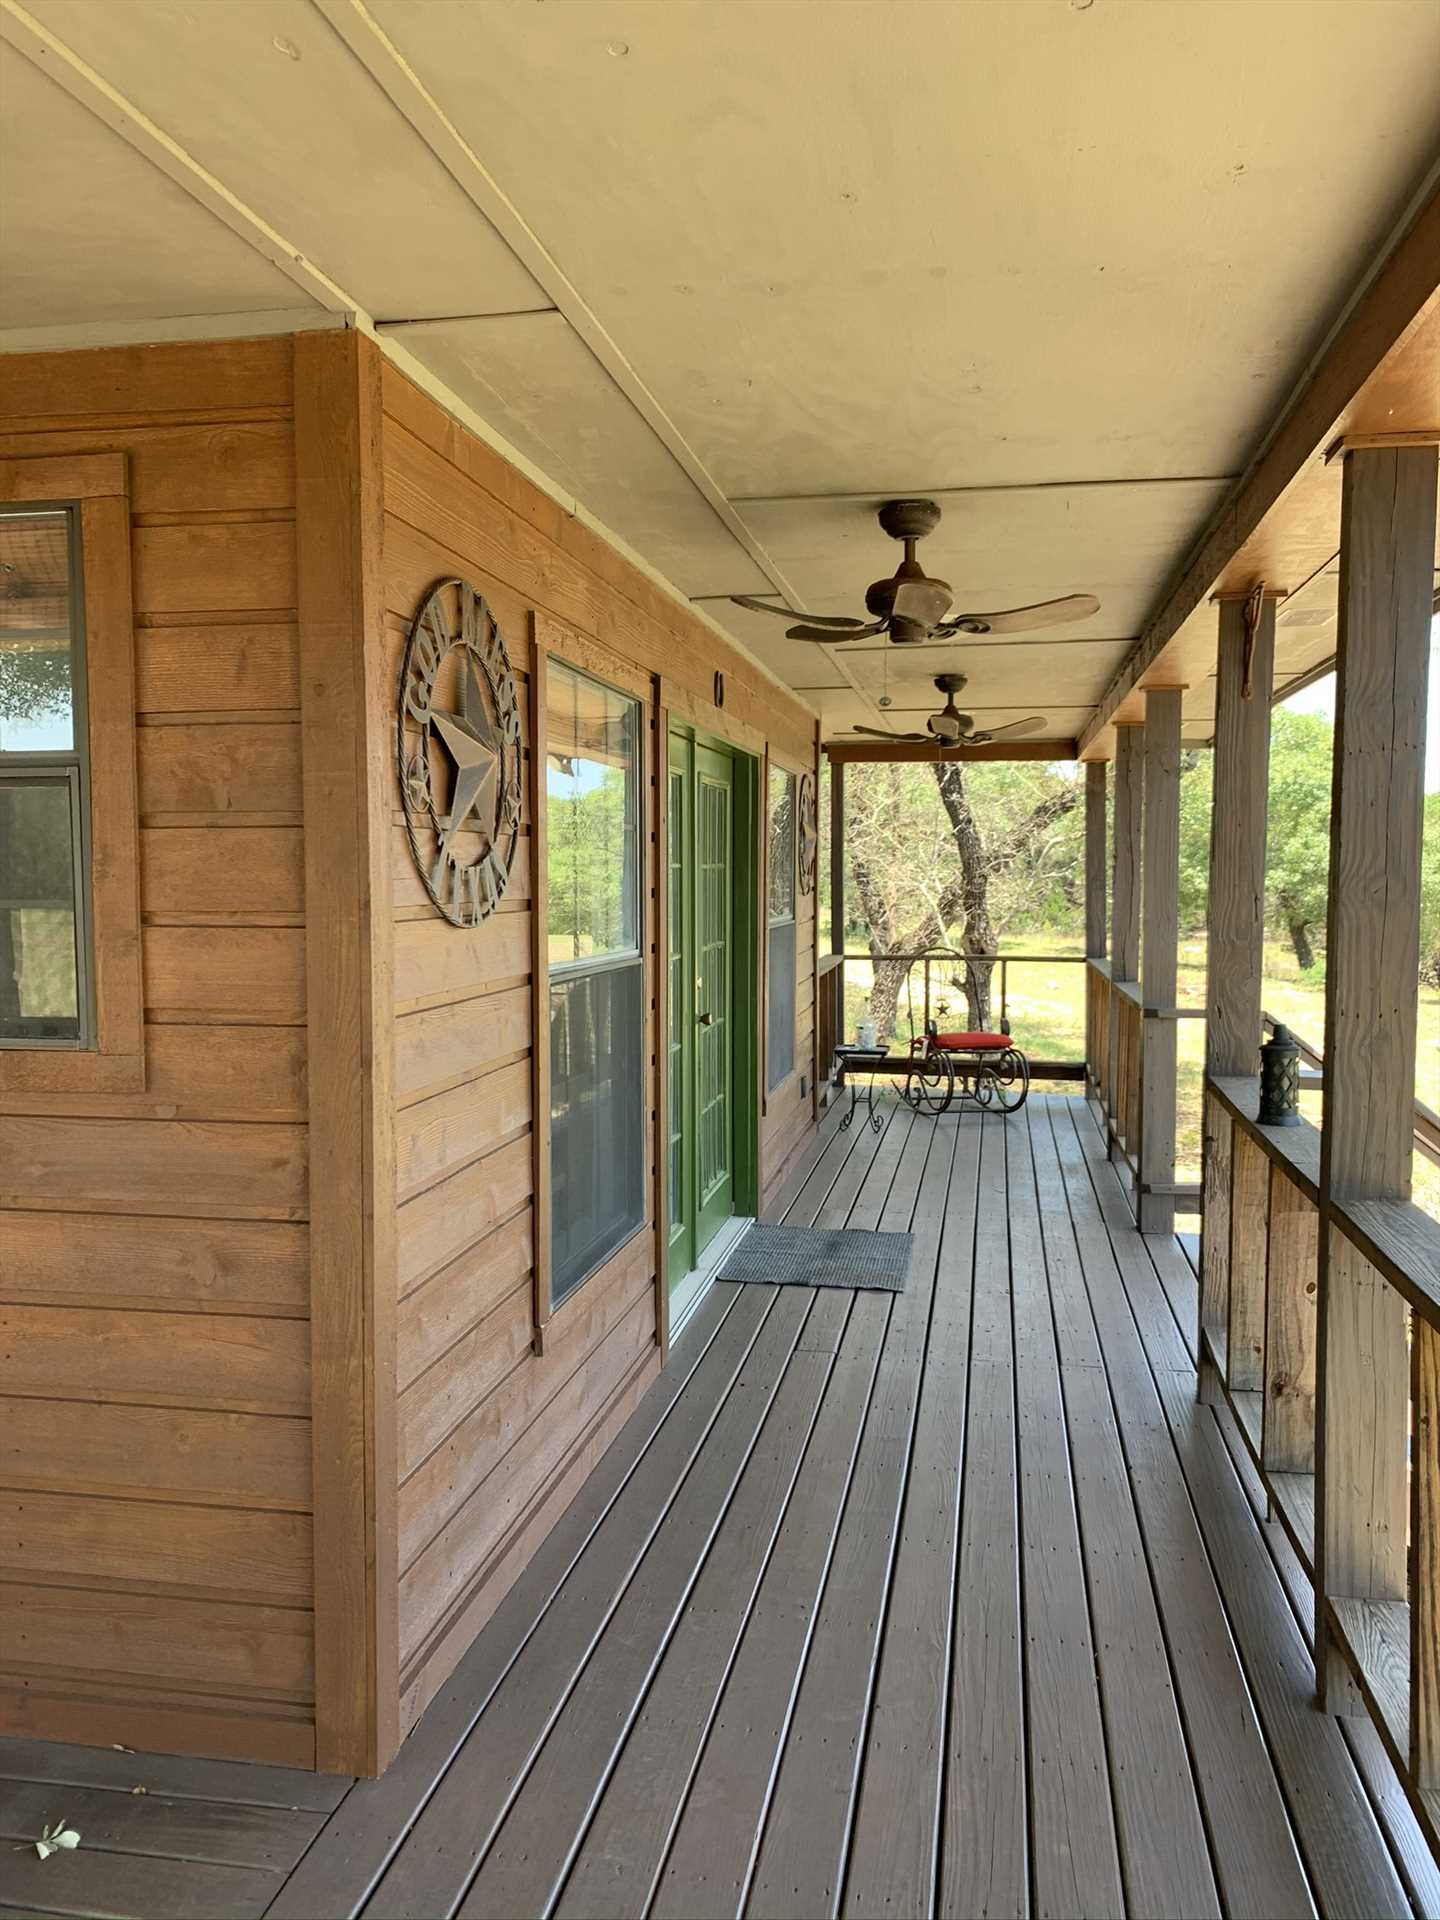 The huge porch at the Hideout provides a comfortable and shaded perch for you to take in those inspiring Hill Country views.